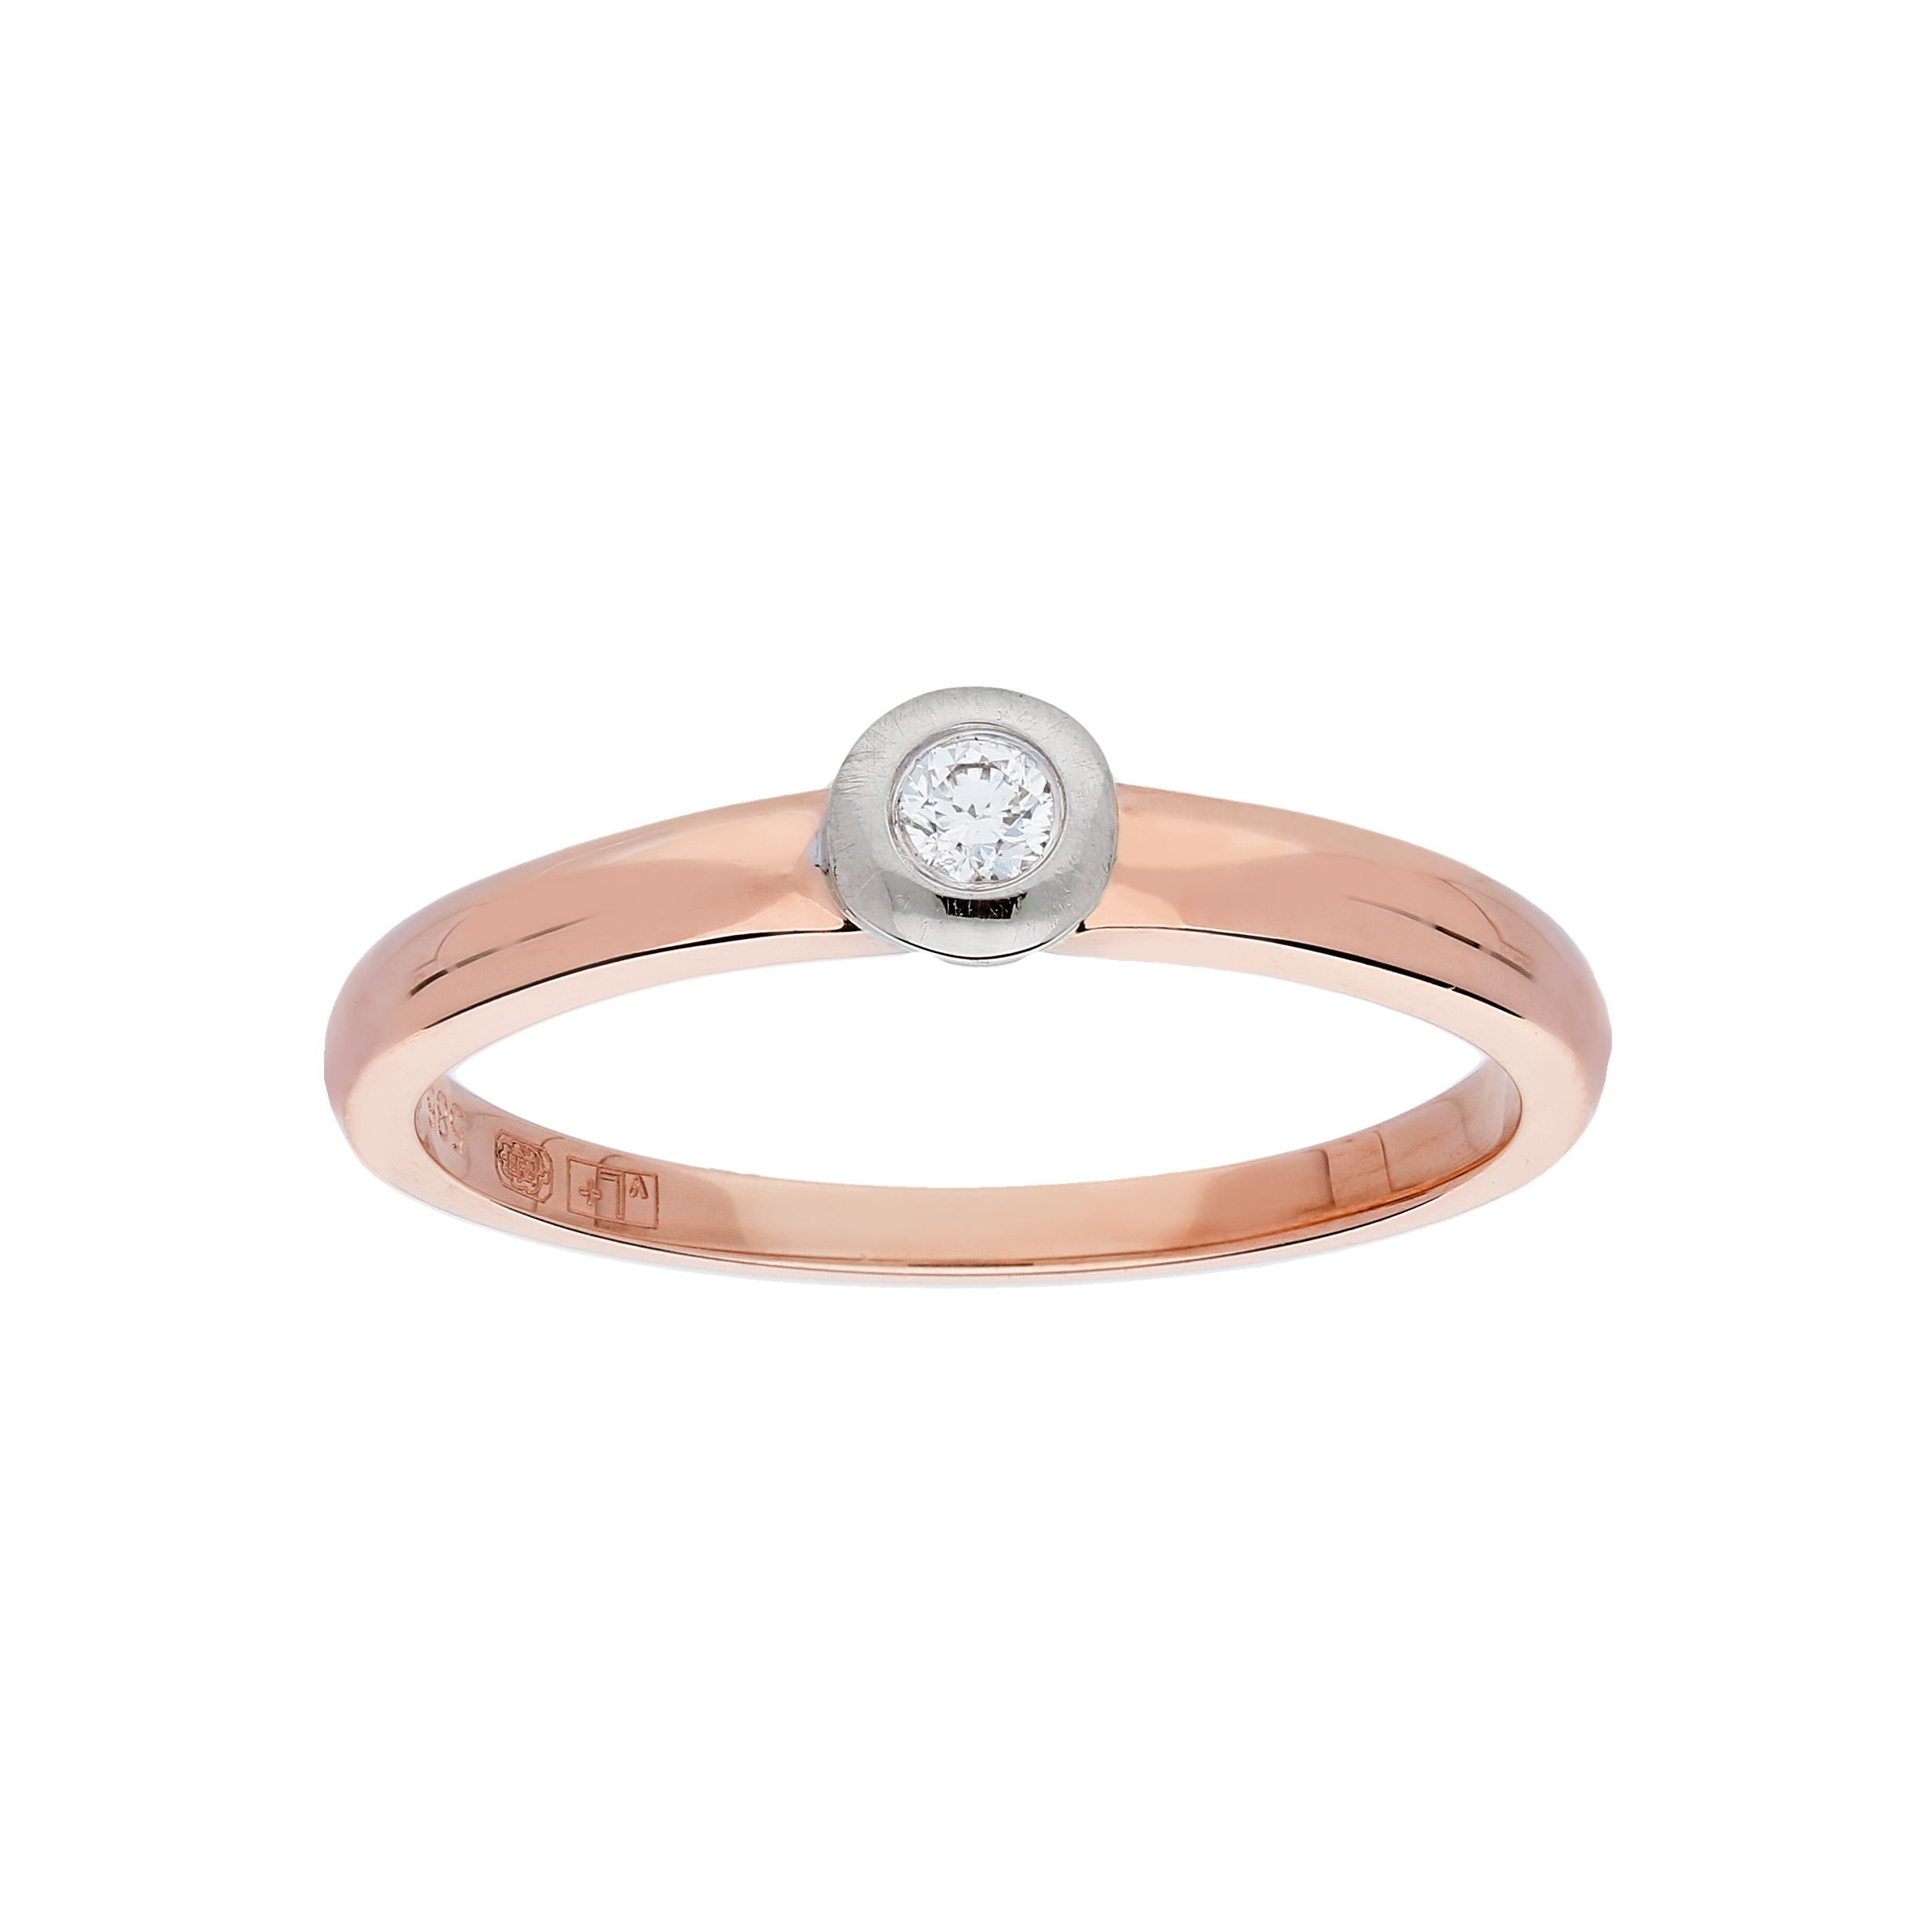 Glow Gouden Ring Bicolor Mat Glanzend Diamant 1 0.05ct G si 214.5208.54